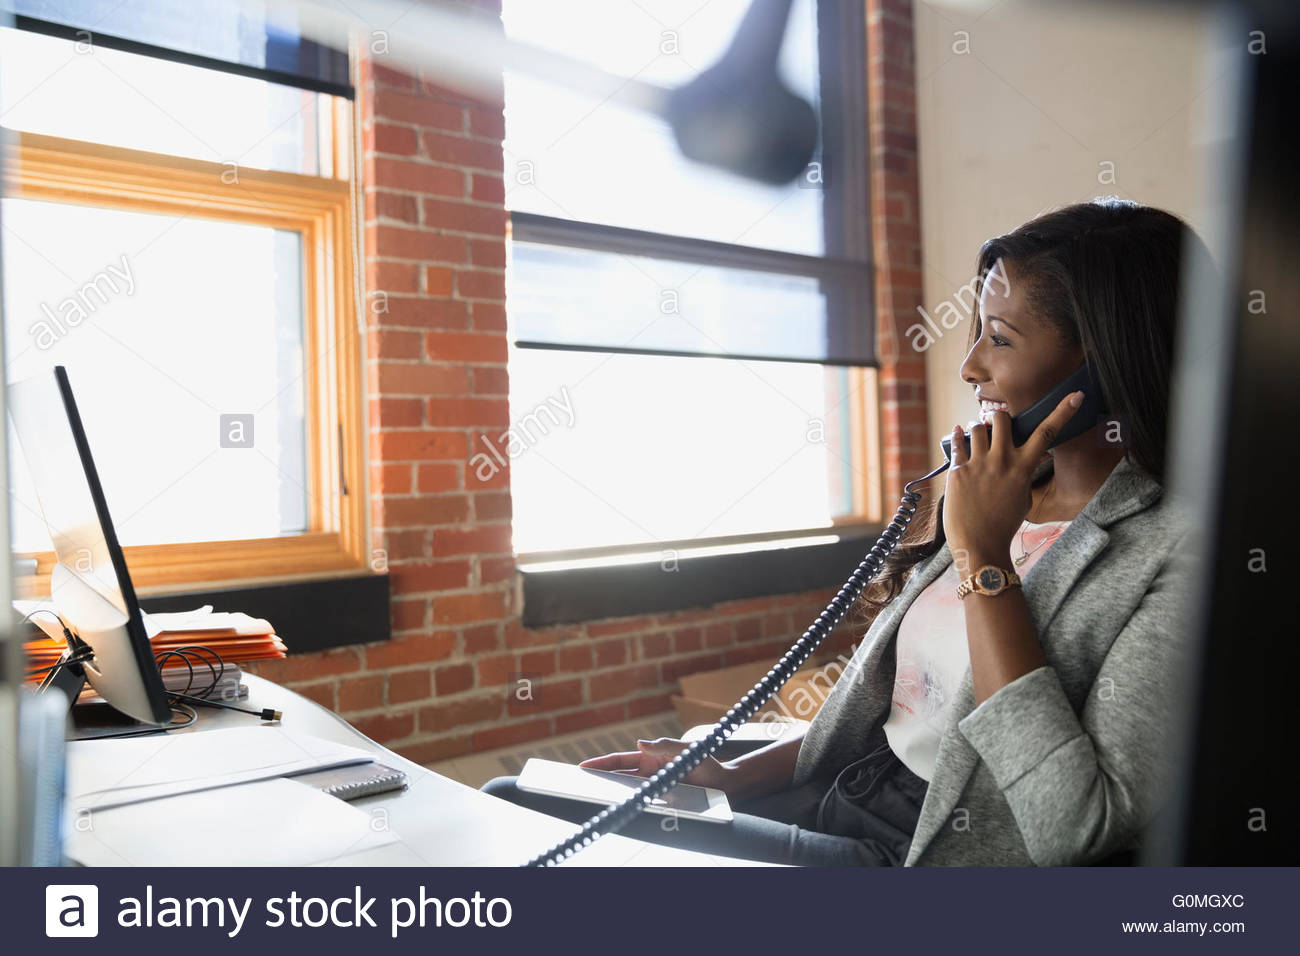 Businesswoman talking on telephone at office desk - Stock Image